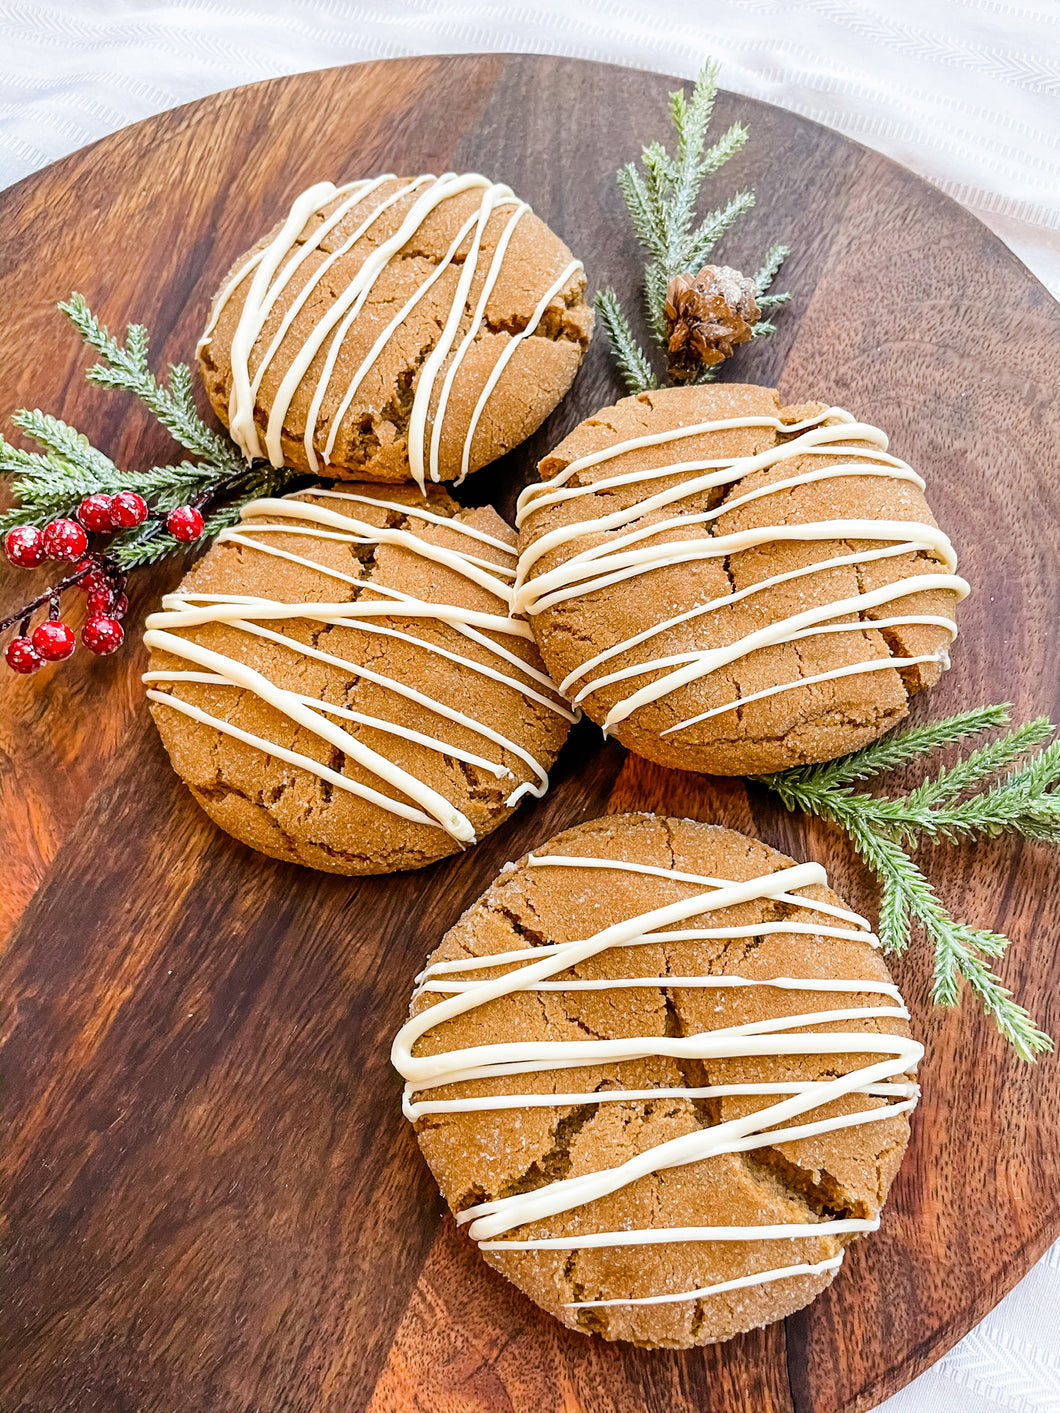 Covet 4 Oversized Cookies - Holiday Gingersnaps